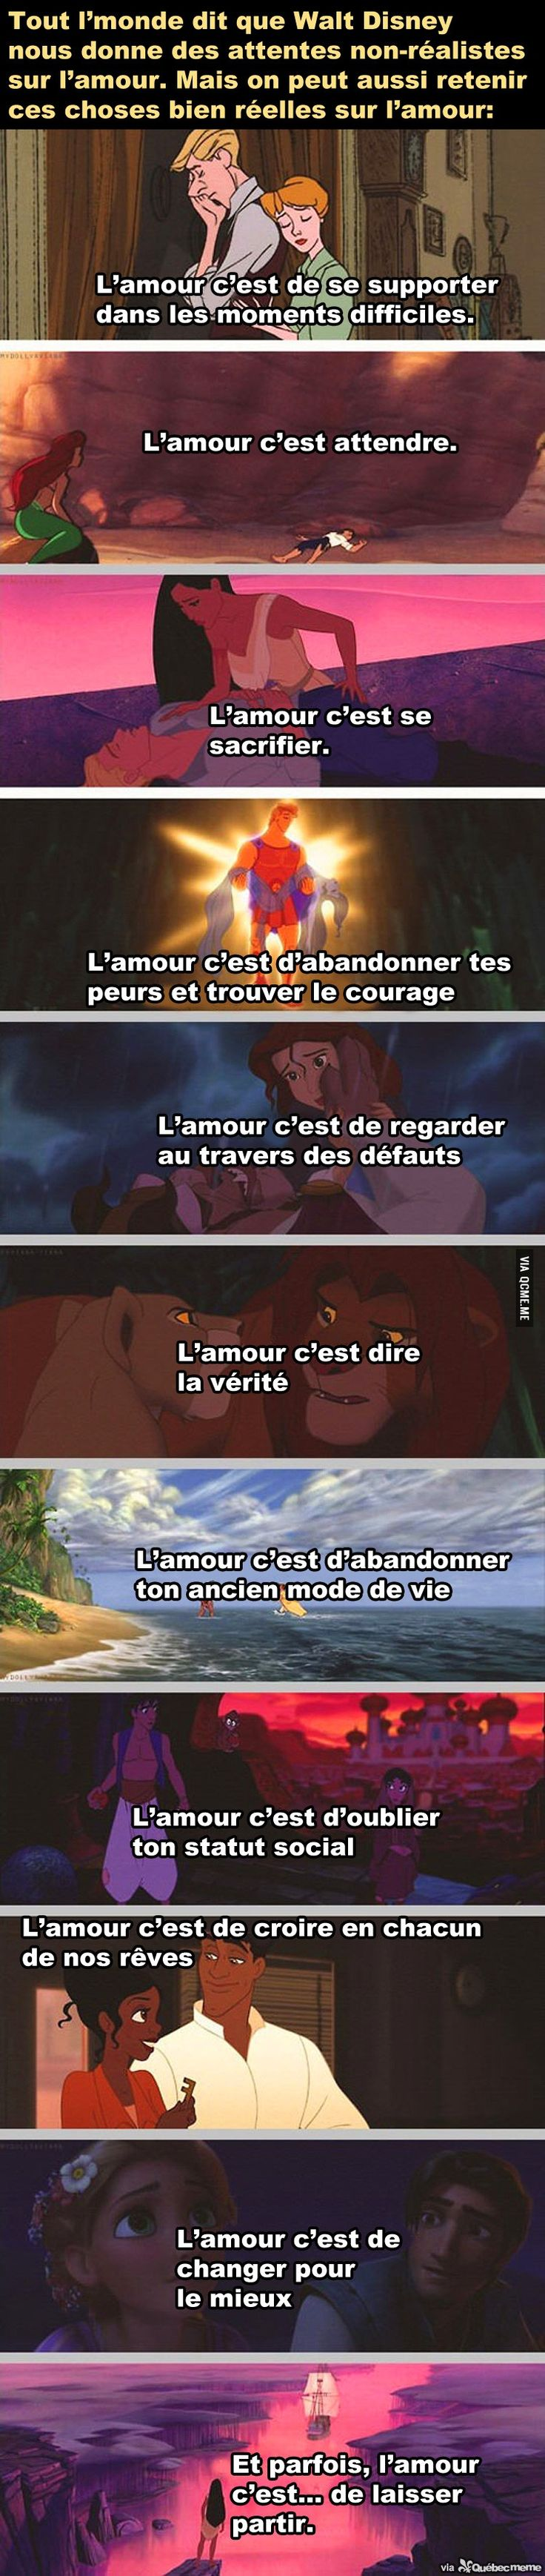 citation amour walt disney